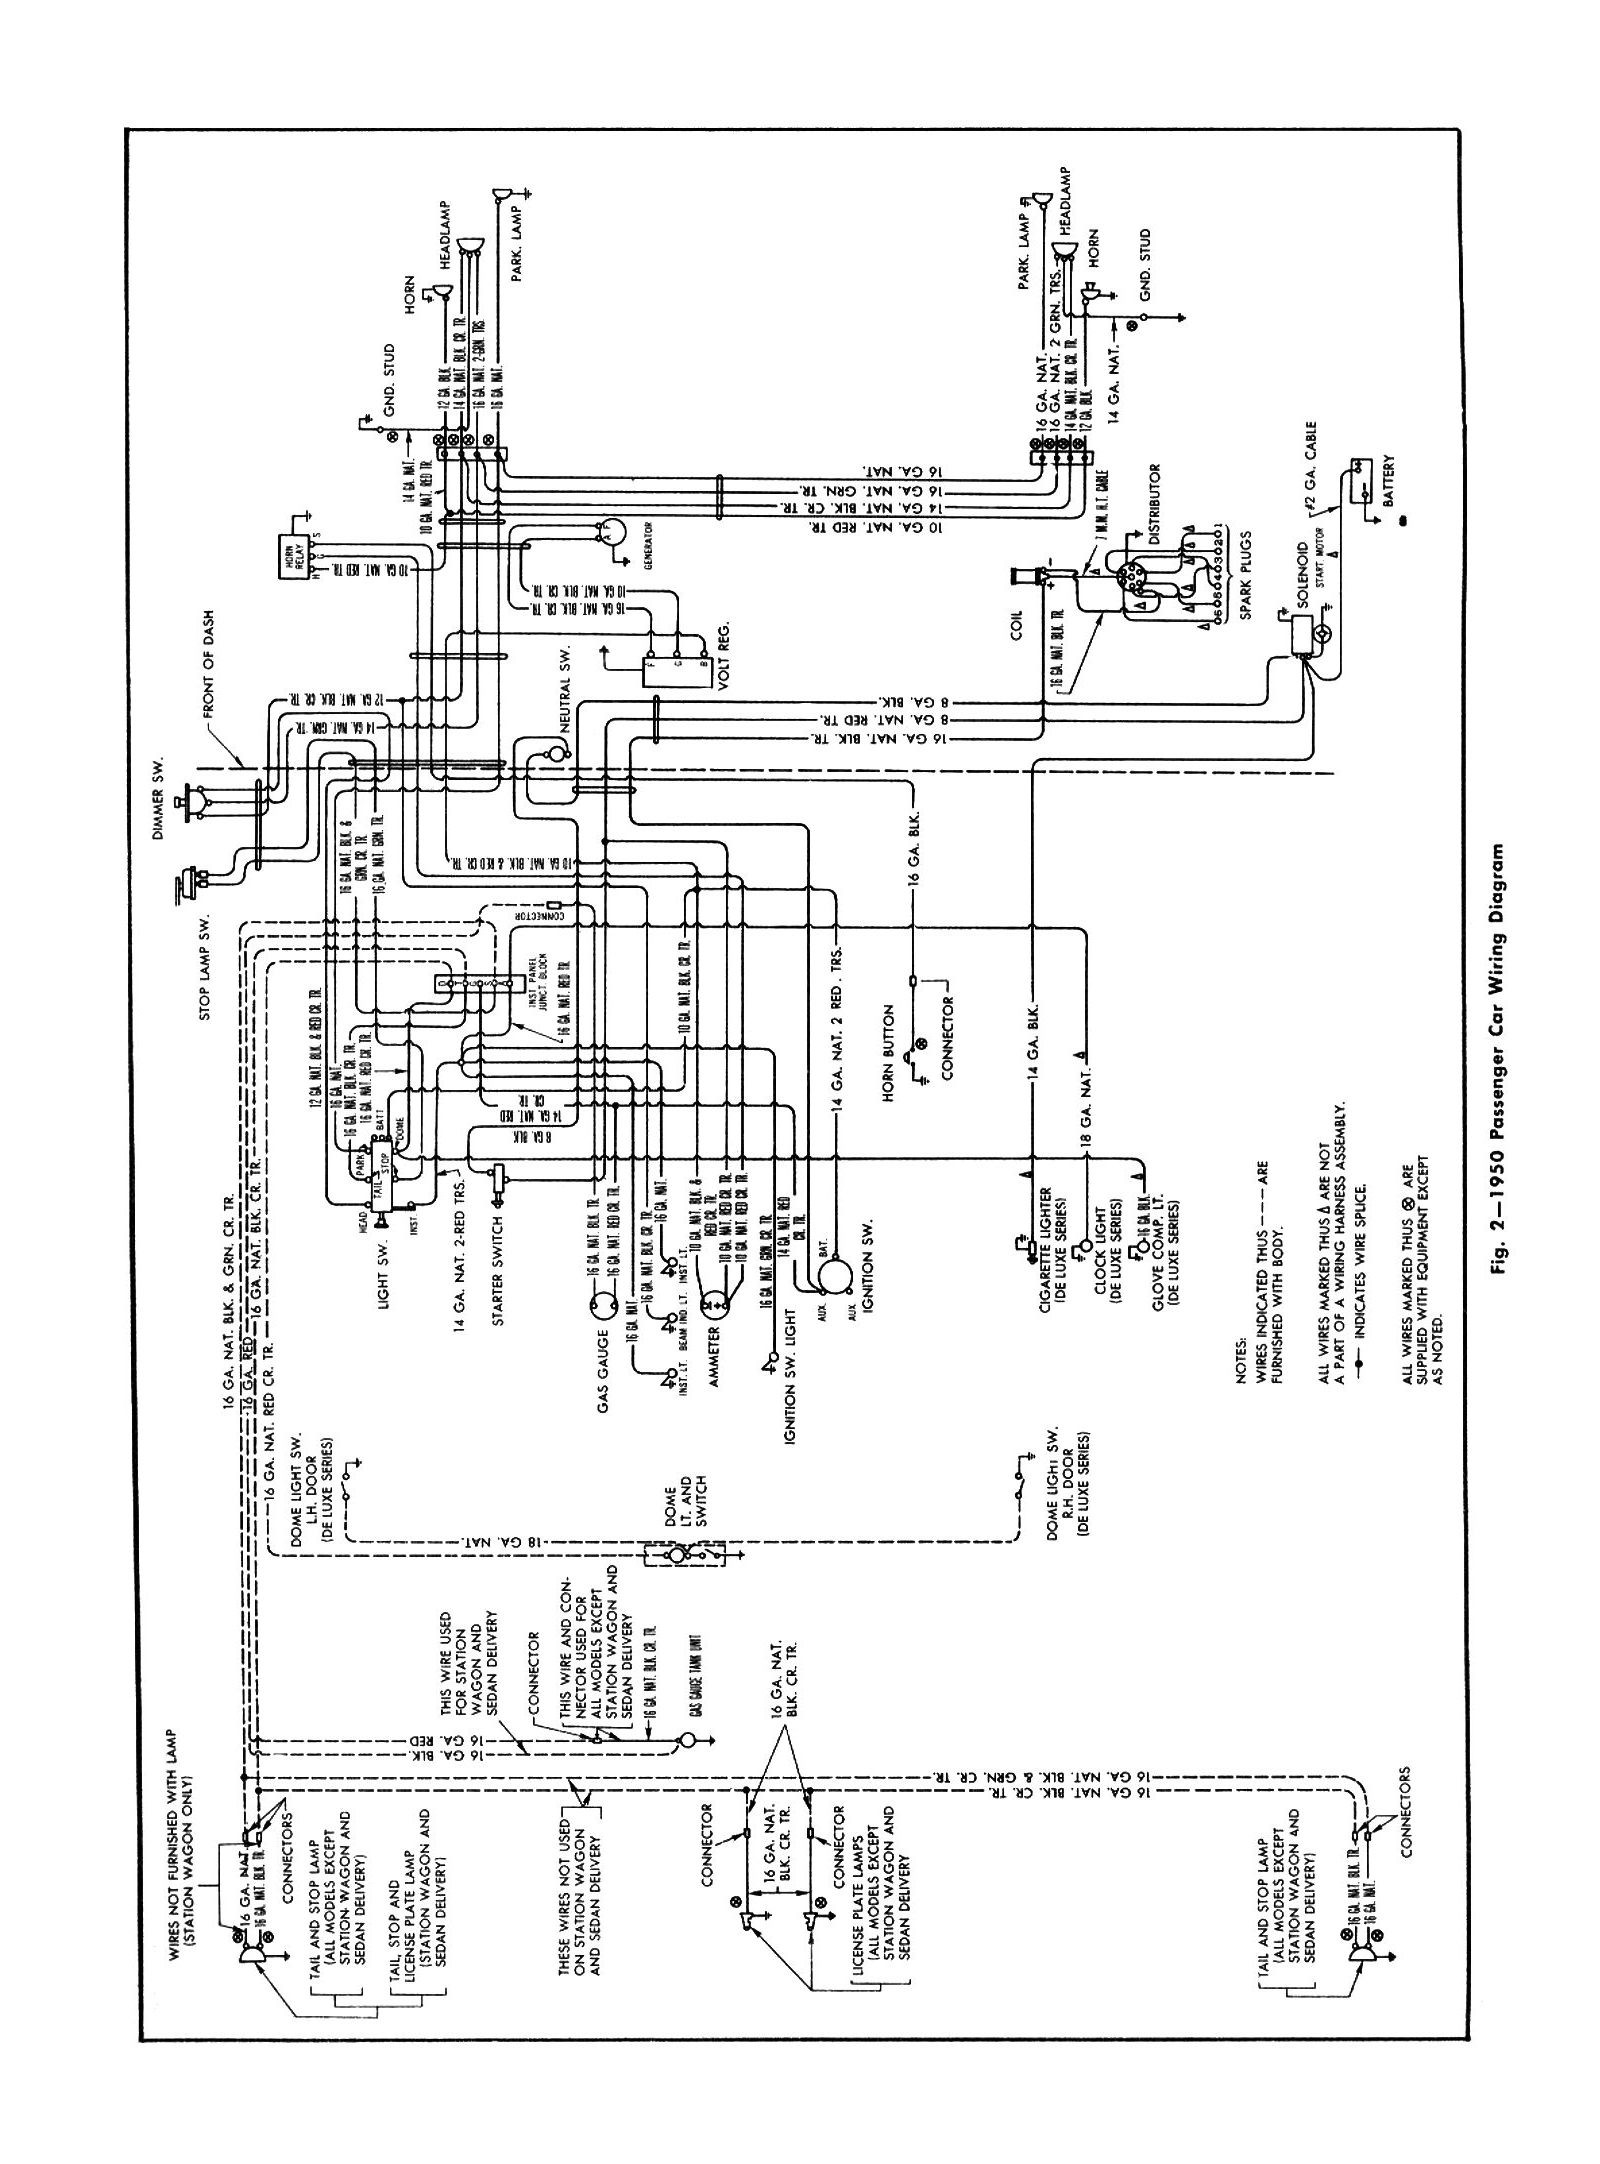 Gm Headlight Wiring Harnes Diagram 97